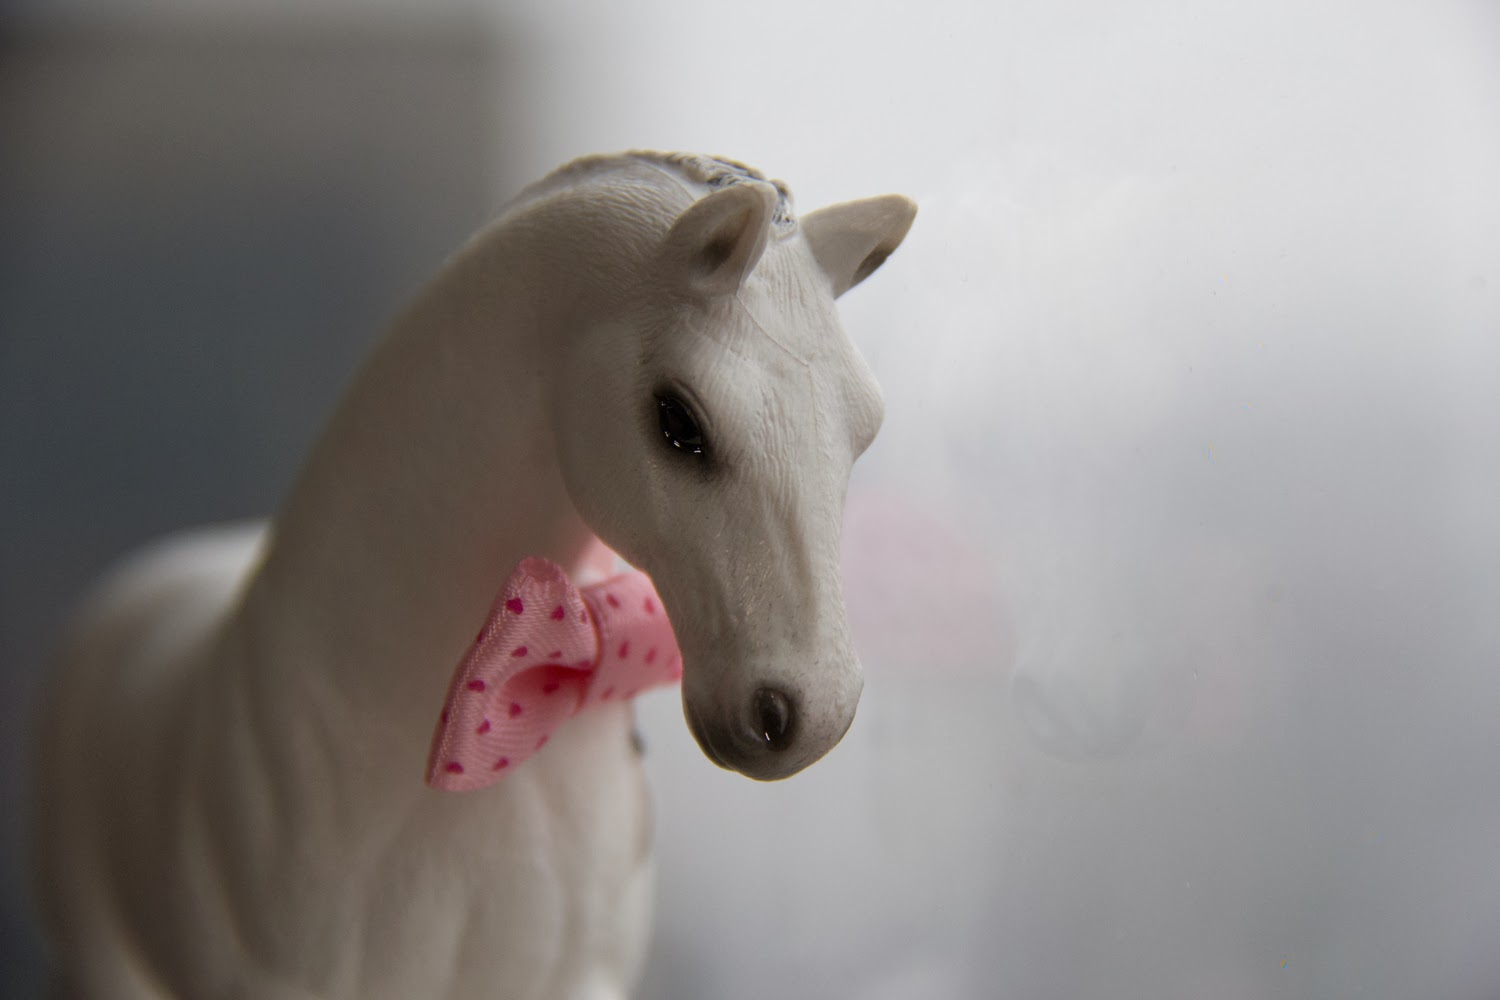 Year-of-the-horse, Chinese-New-Year-2014, White-horse, Pink-Bow-Tie